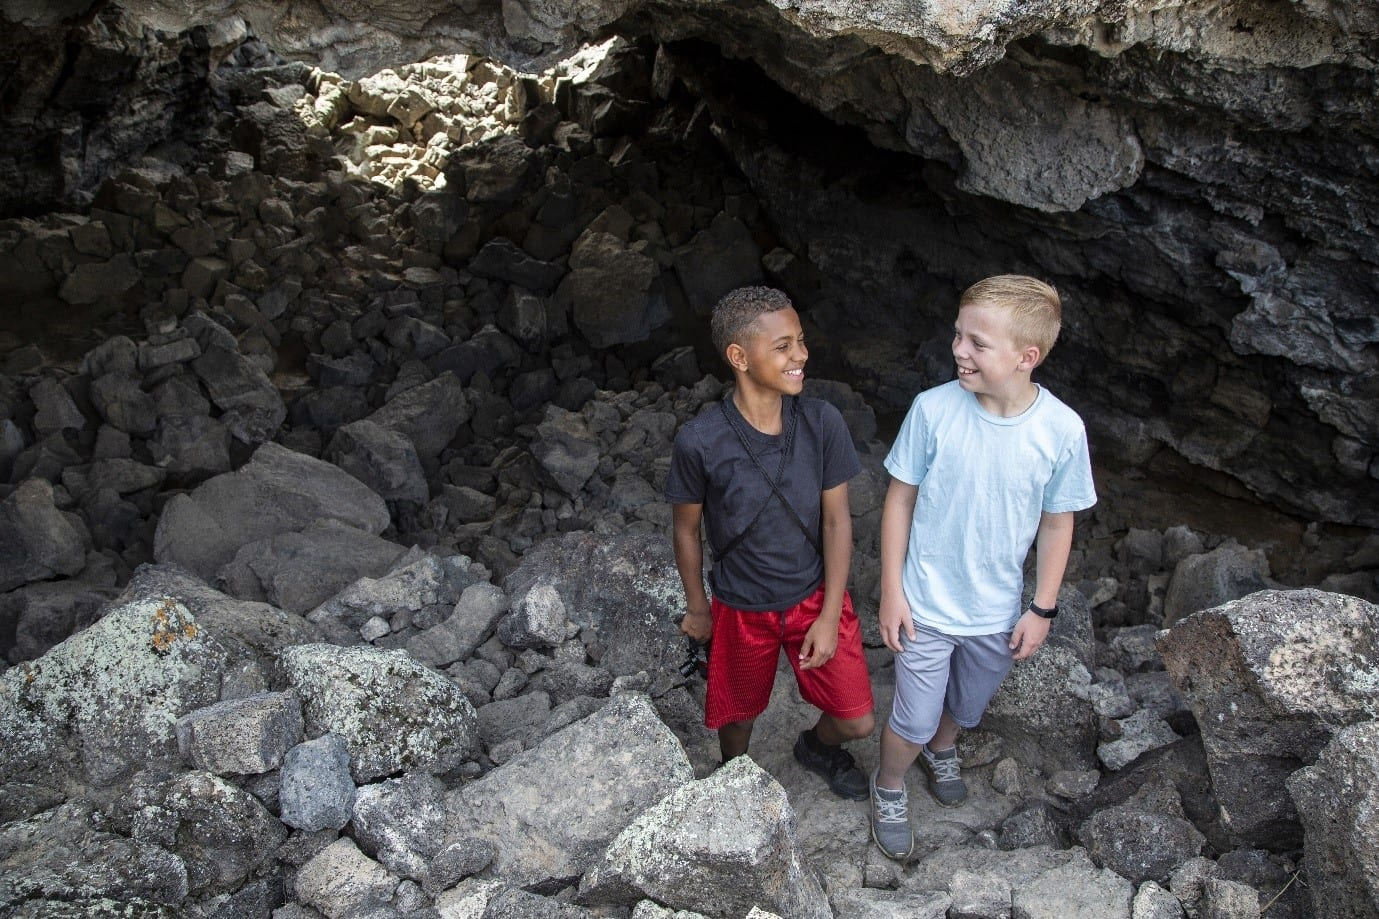 Two boys exploring a cave